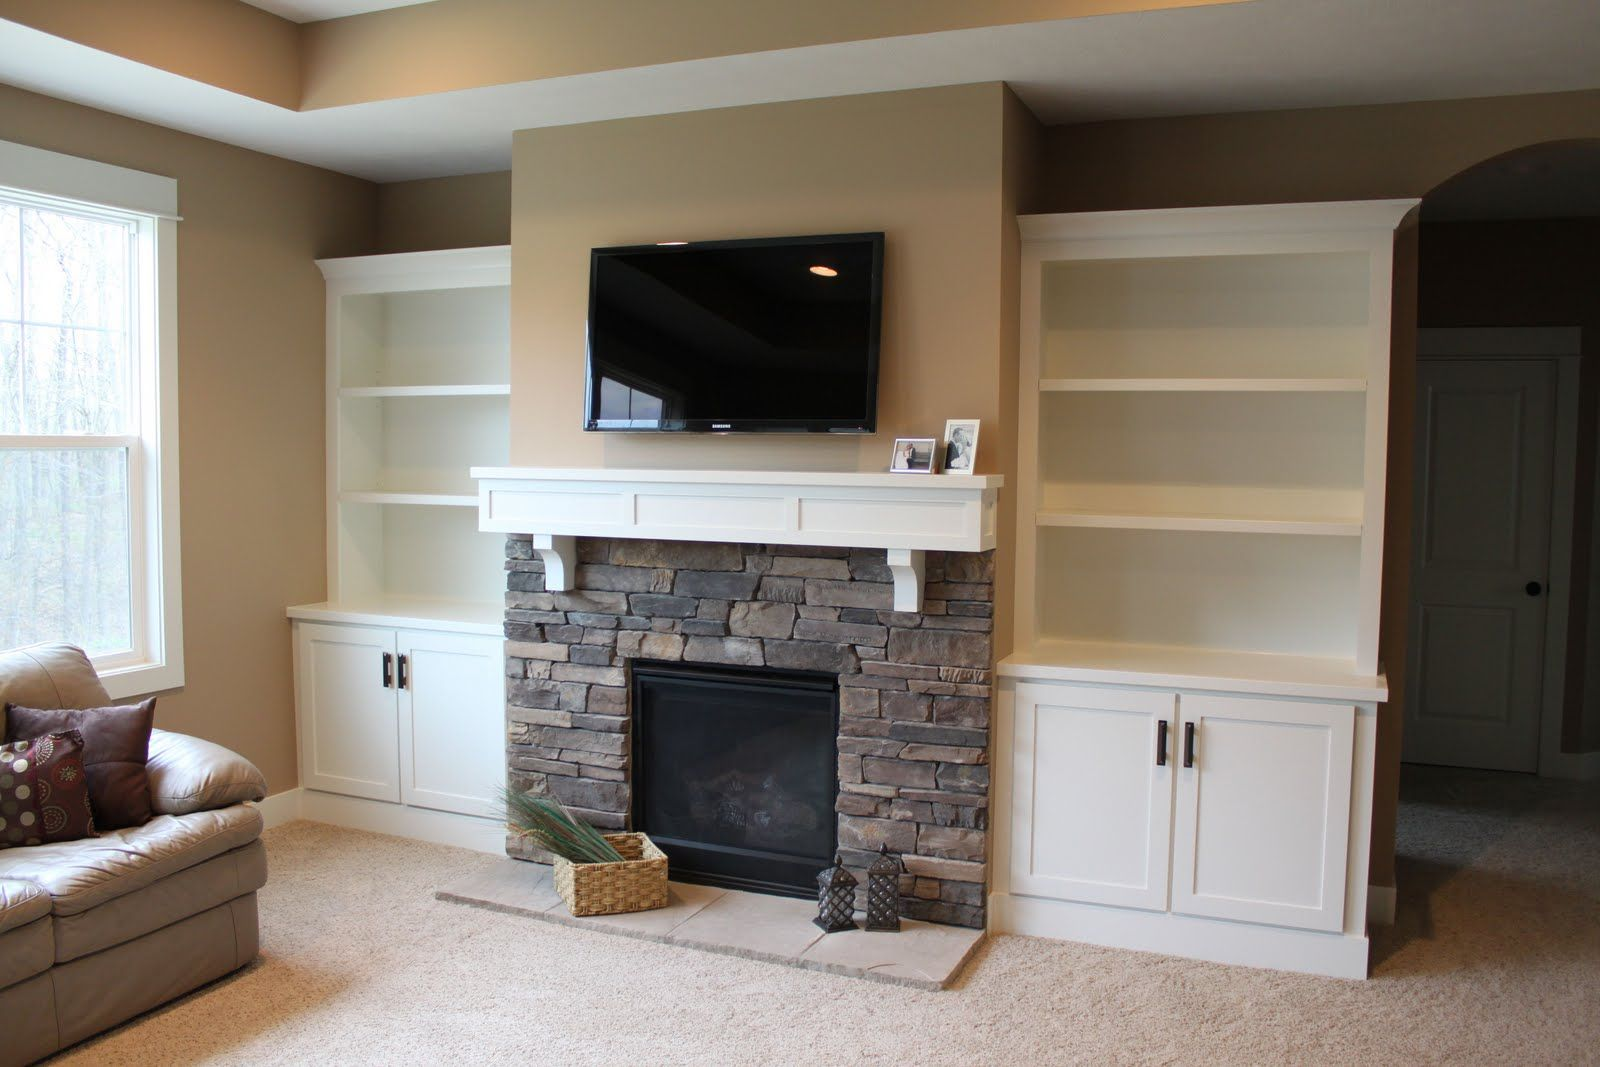 Built In Wall Shelves Built In Shelves Surrounding Fireplace Built In Cabinets And